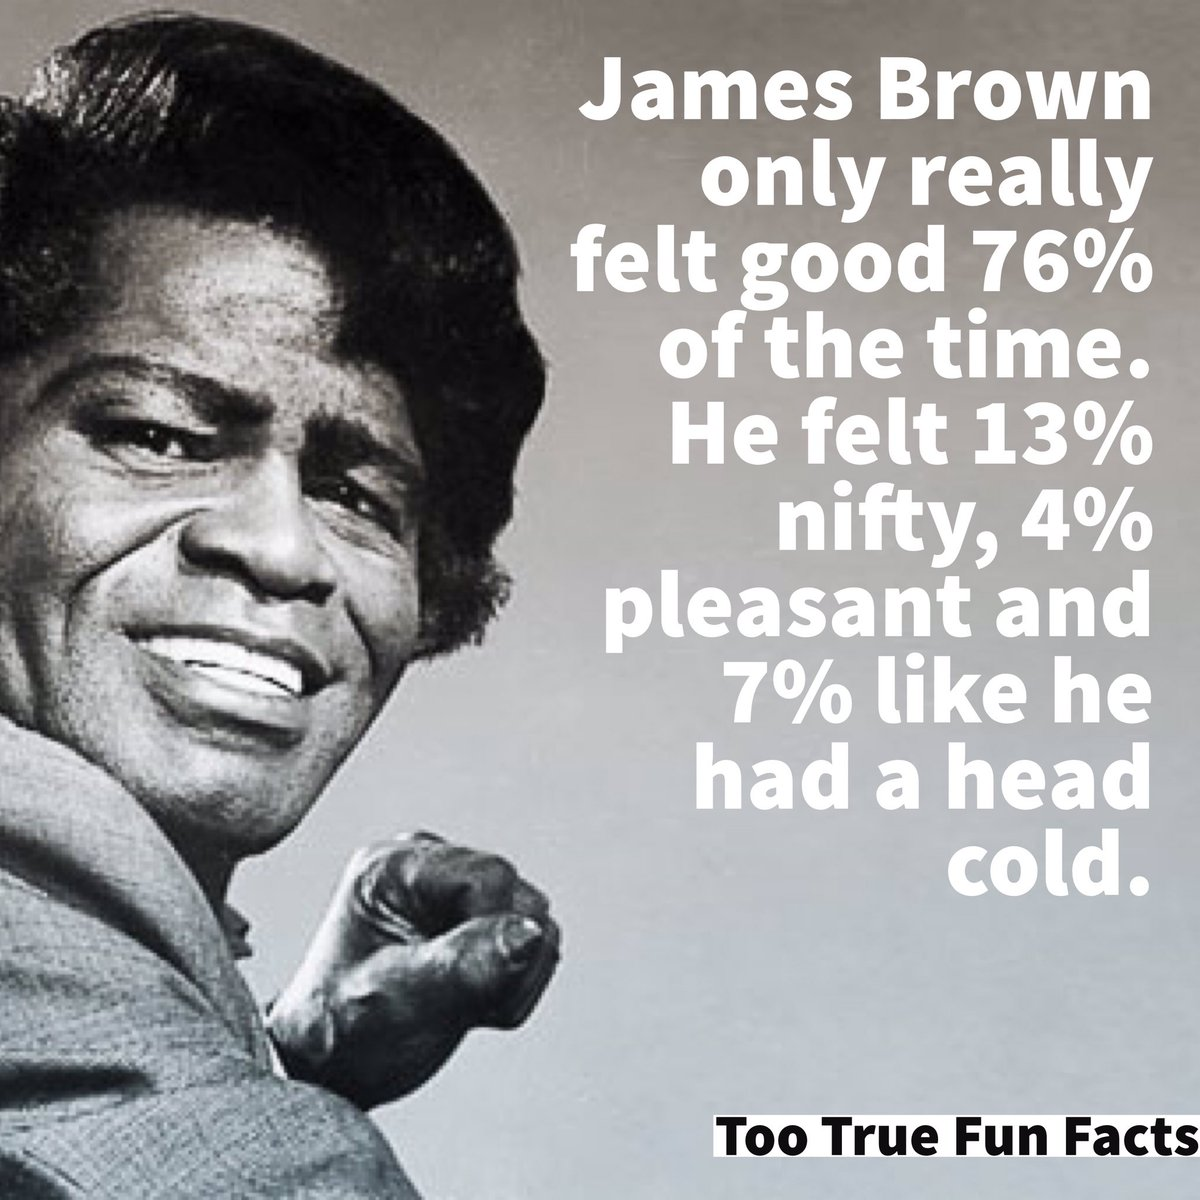 He knew. #jamesbrown #music #MusicMonday #Soul #musicians #Songs #funny #Memes #humor #humour #parody #parodyaccount #Satire #lol #lols<br>http://pic.twitter.com/1l5Credpe7